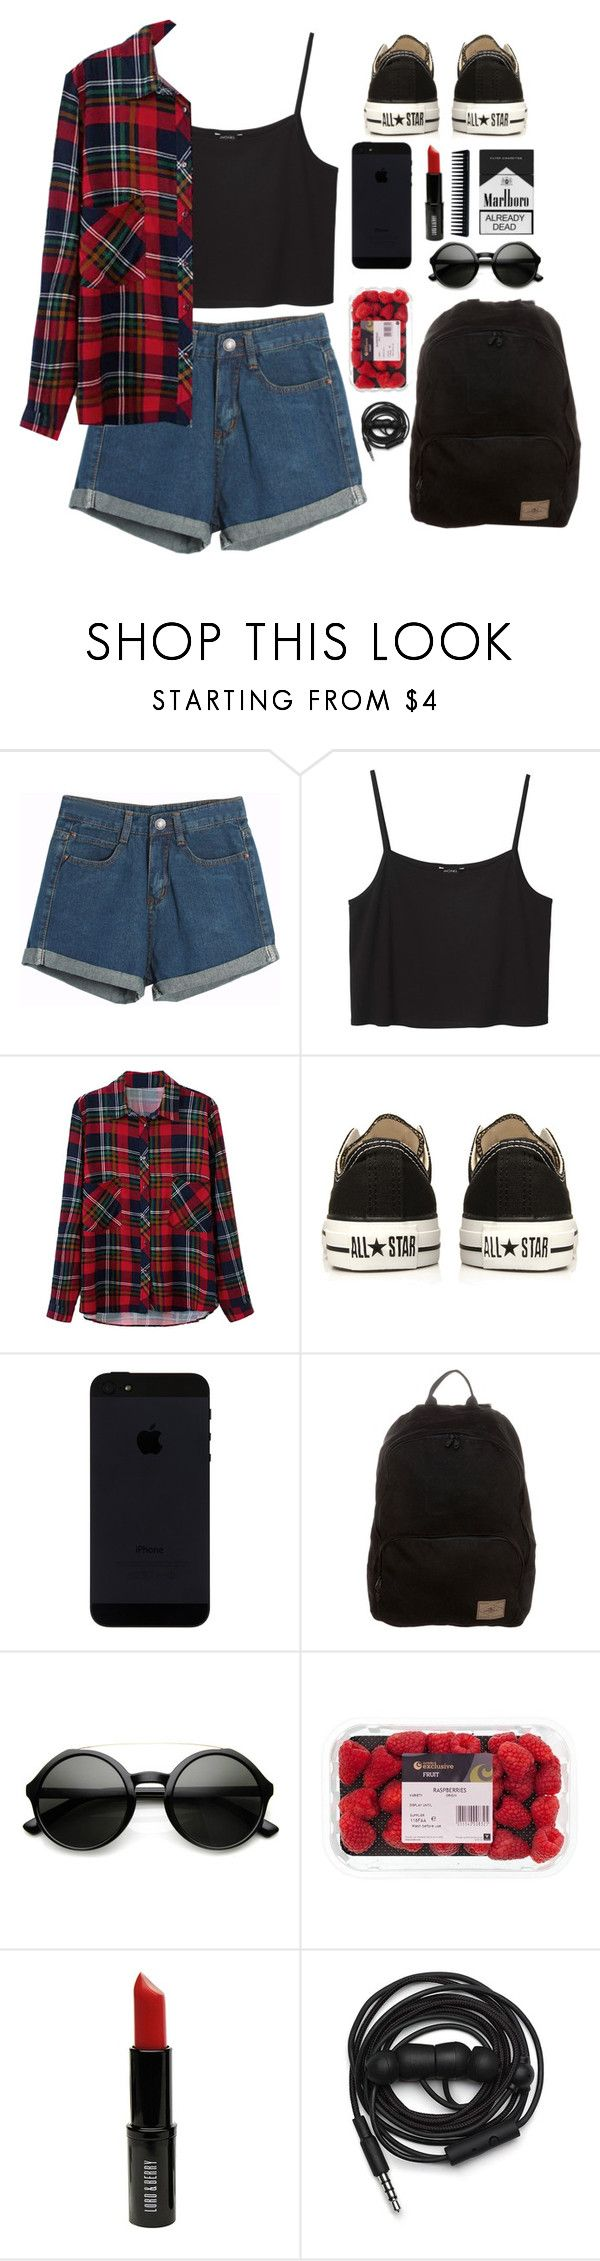 """Sin título #24"" by yanilobox ❤ liked on Polyvore featuring Chicnova Fashion, Monki, Converse, O'Neill, Retrò, Lord & Berry, Urbanears and GHD"